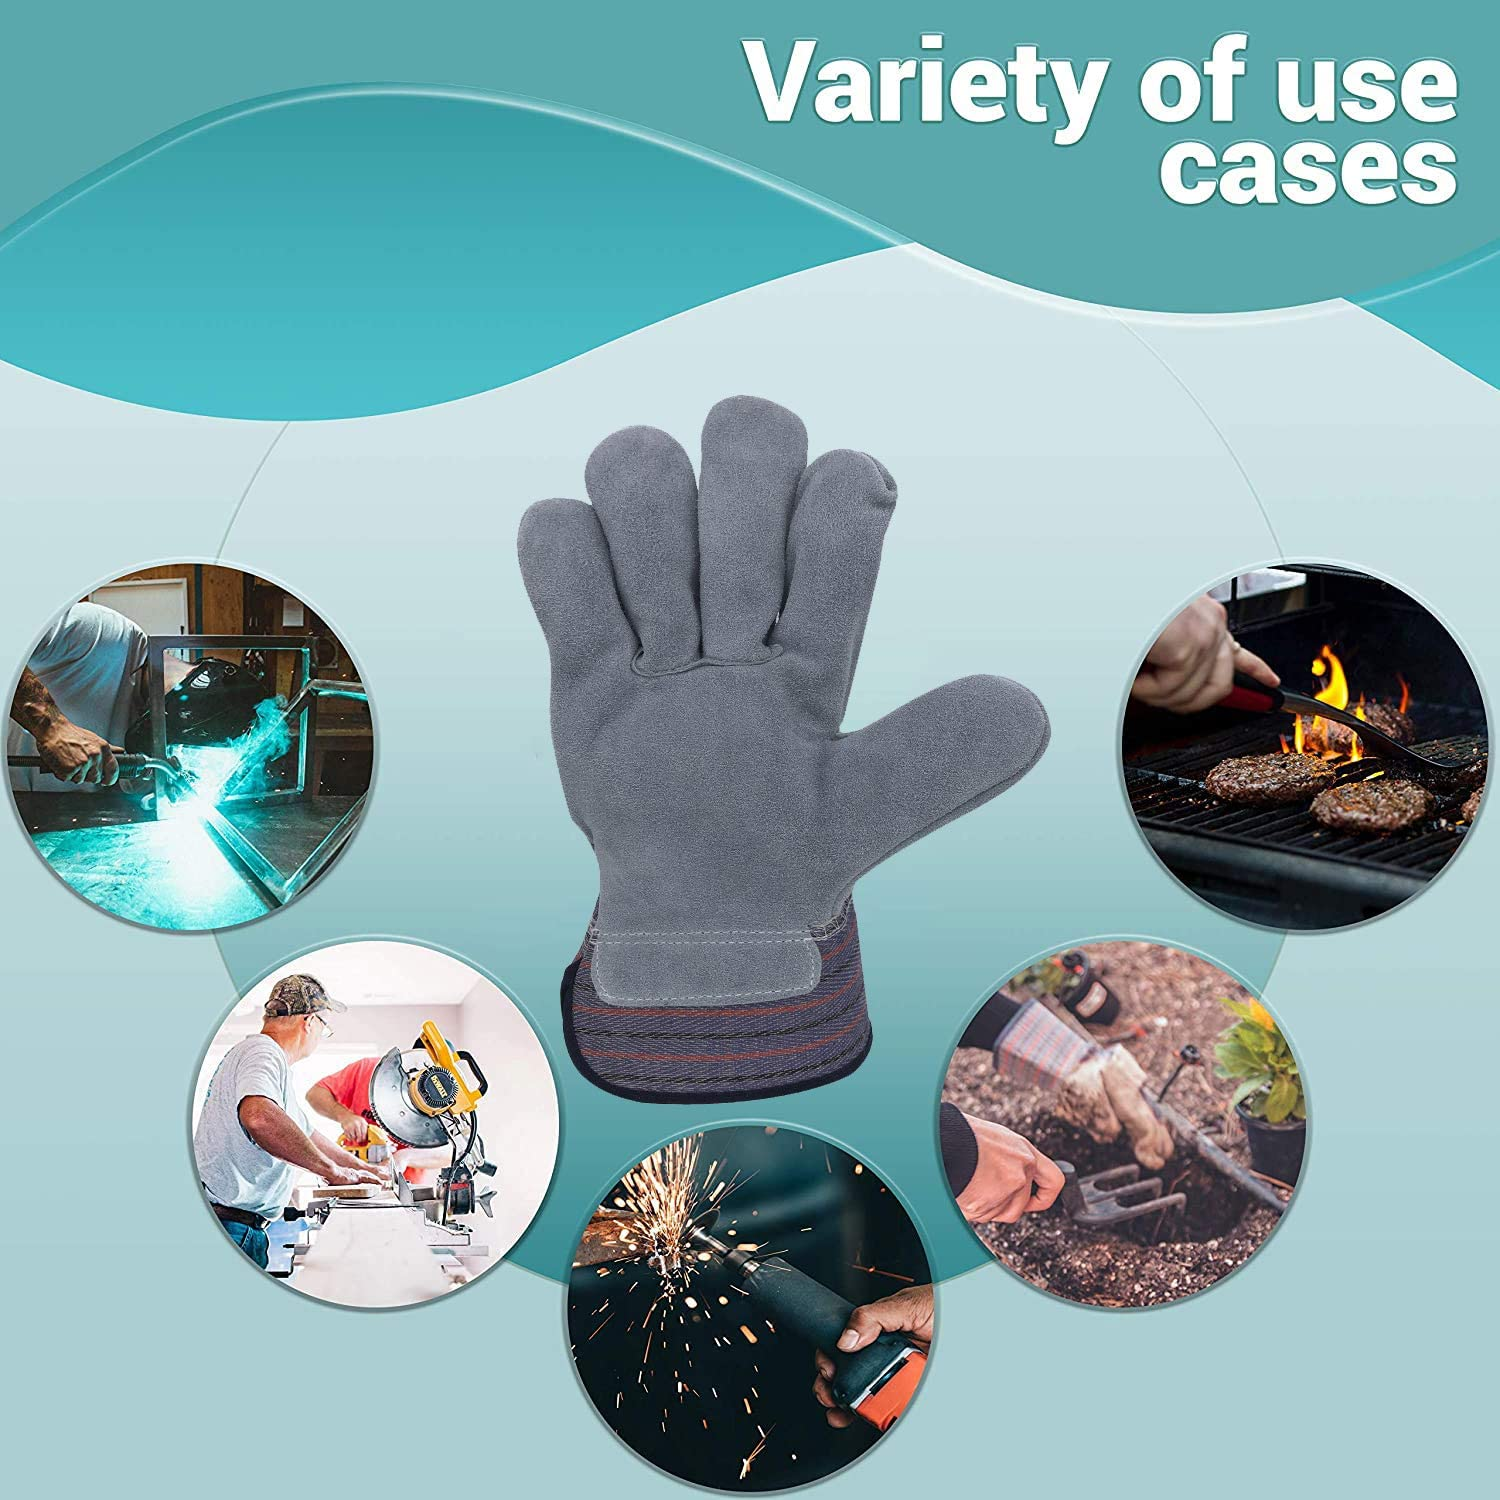 Cotton Canvas Gloves Baking. Medium Size Non-Slip Cotton Gloves Ideal for Welding Comfortable fit Grey Heat-Resistant Workwear Gloves for Man APQ Pack of 12 Standard Feature Hot Mill Gloves